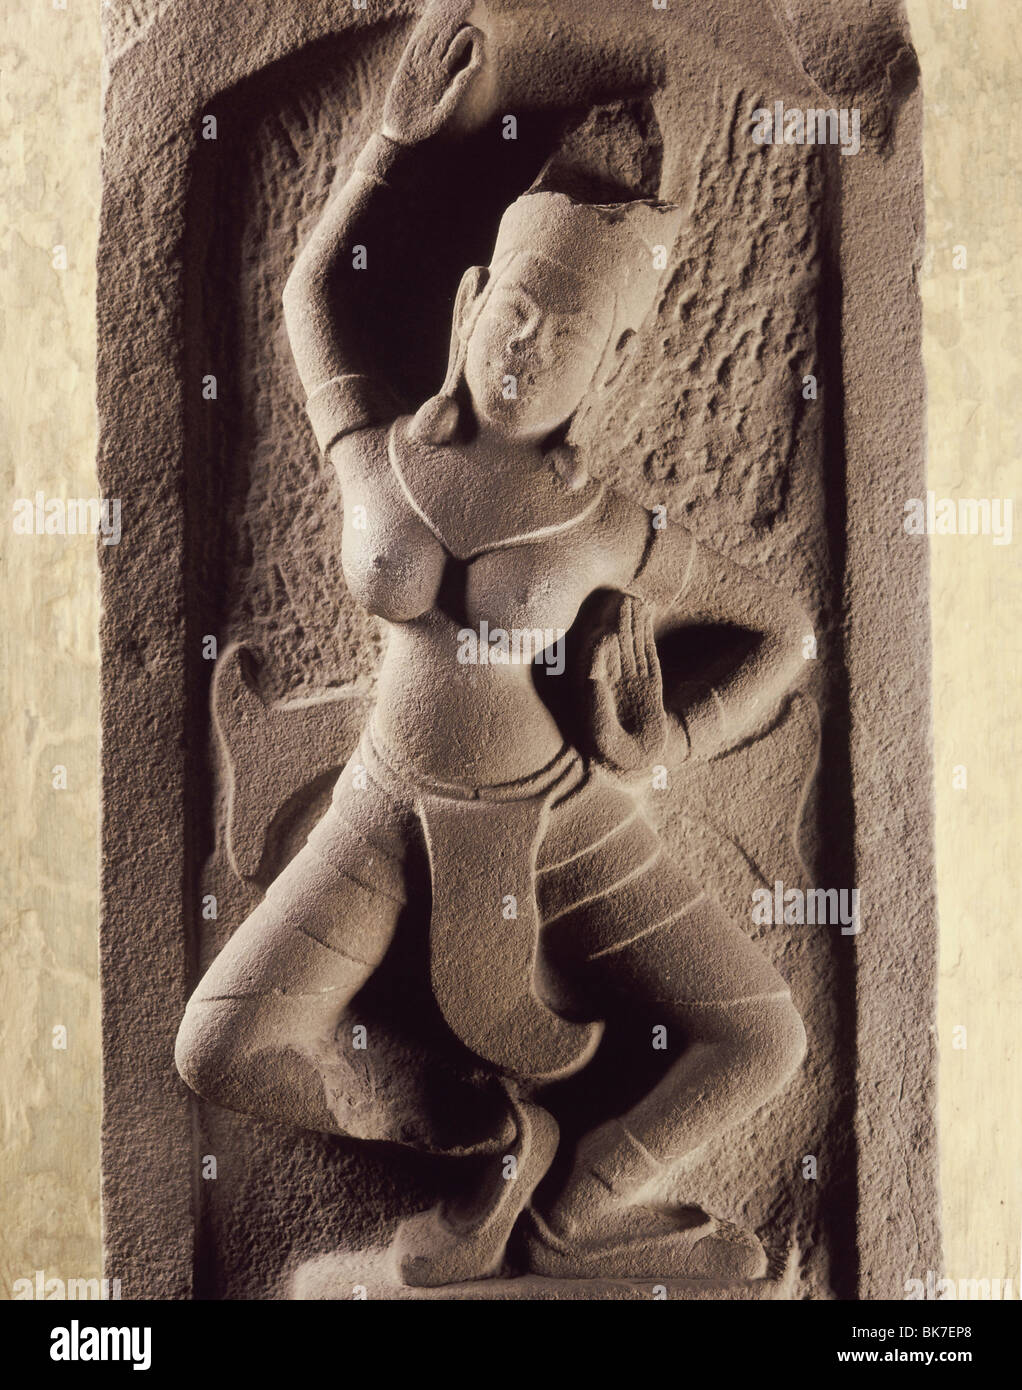 Dancer, Cham Art, Thap Mam style dating from the 12th century, Cham Museum, Danang, Vietnam, Indochina, Southeast - Stock Image